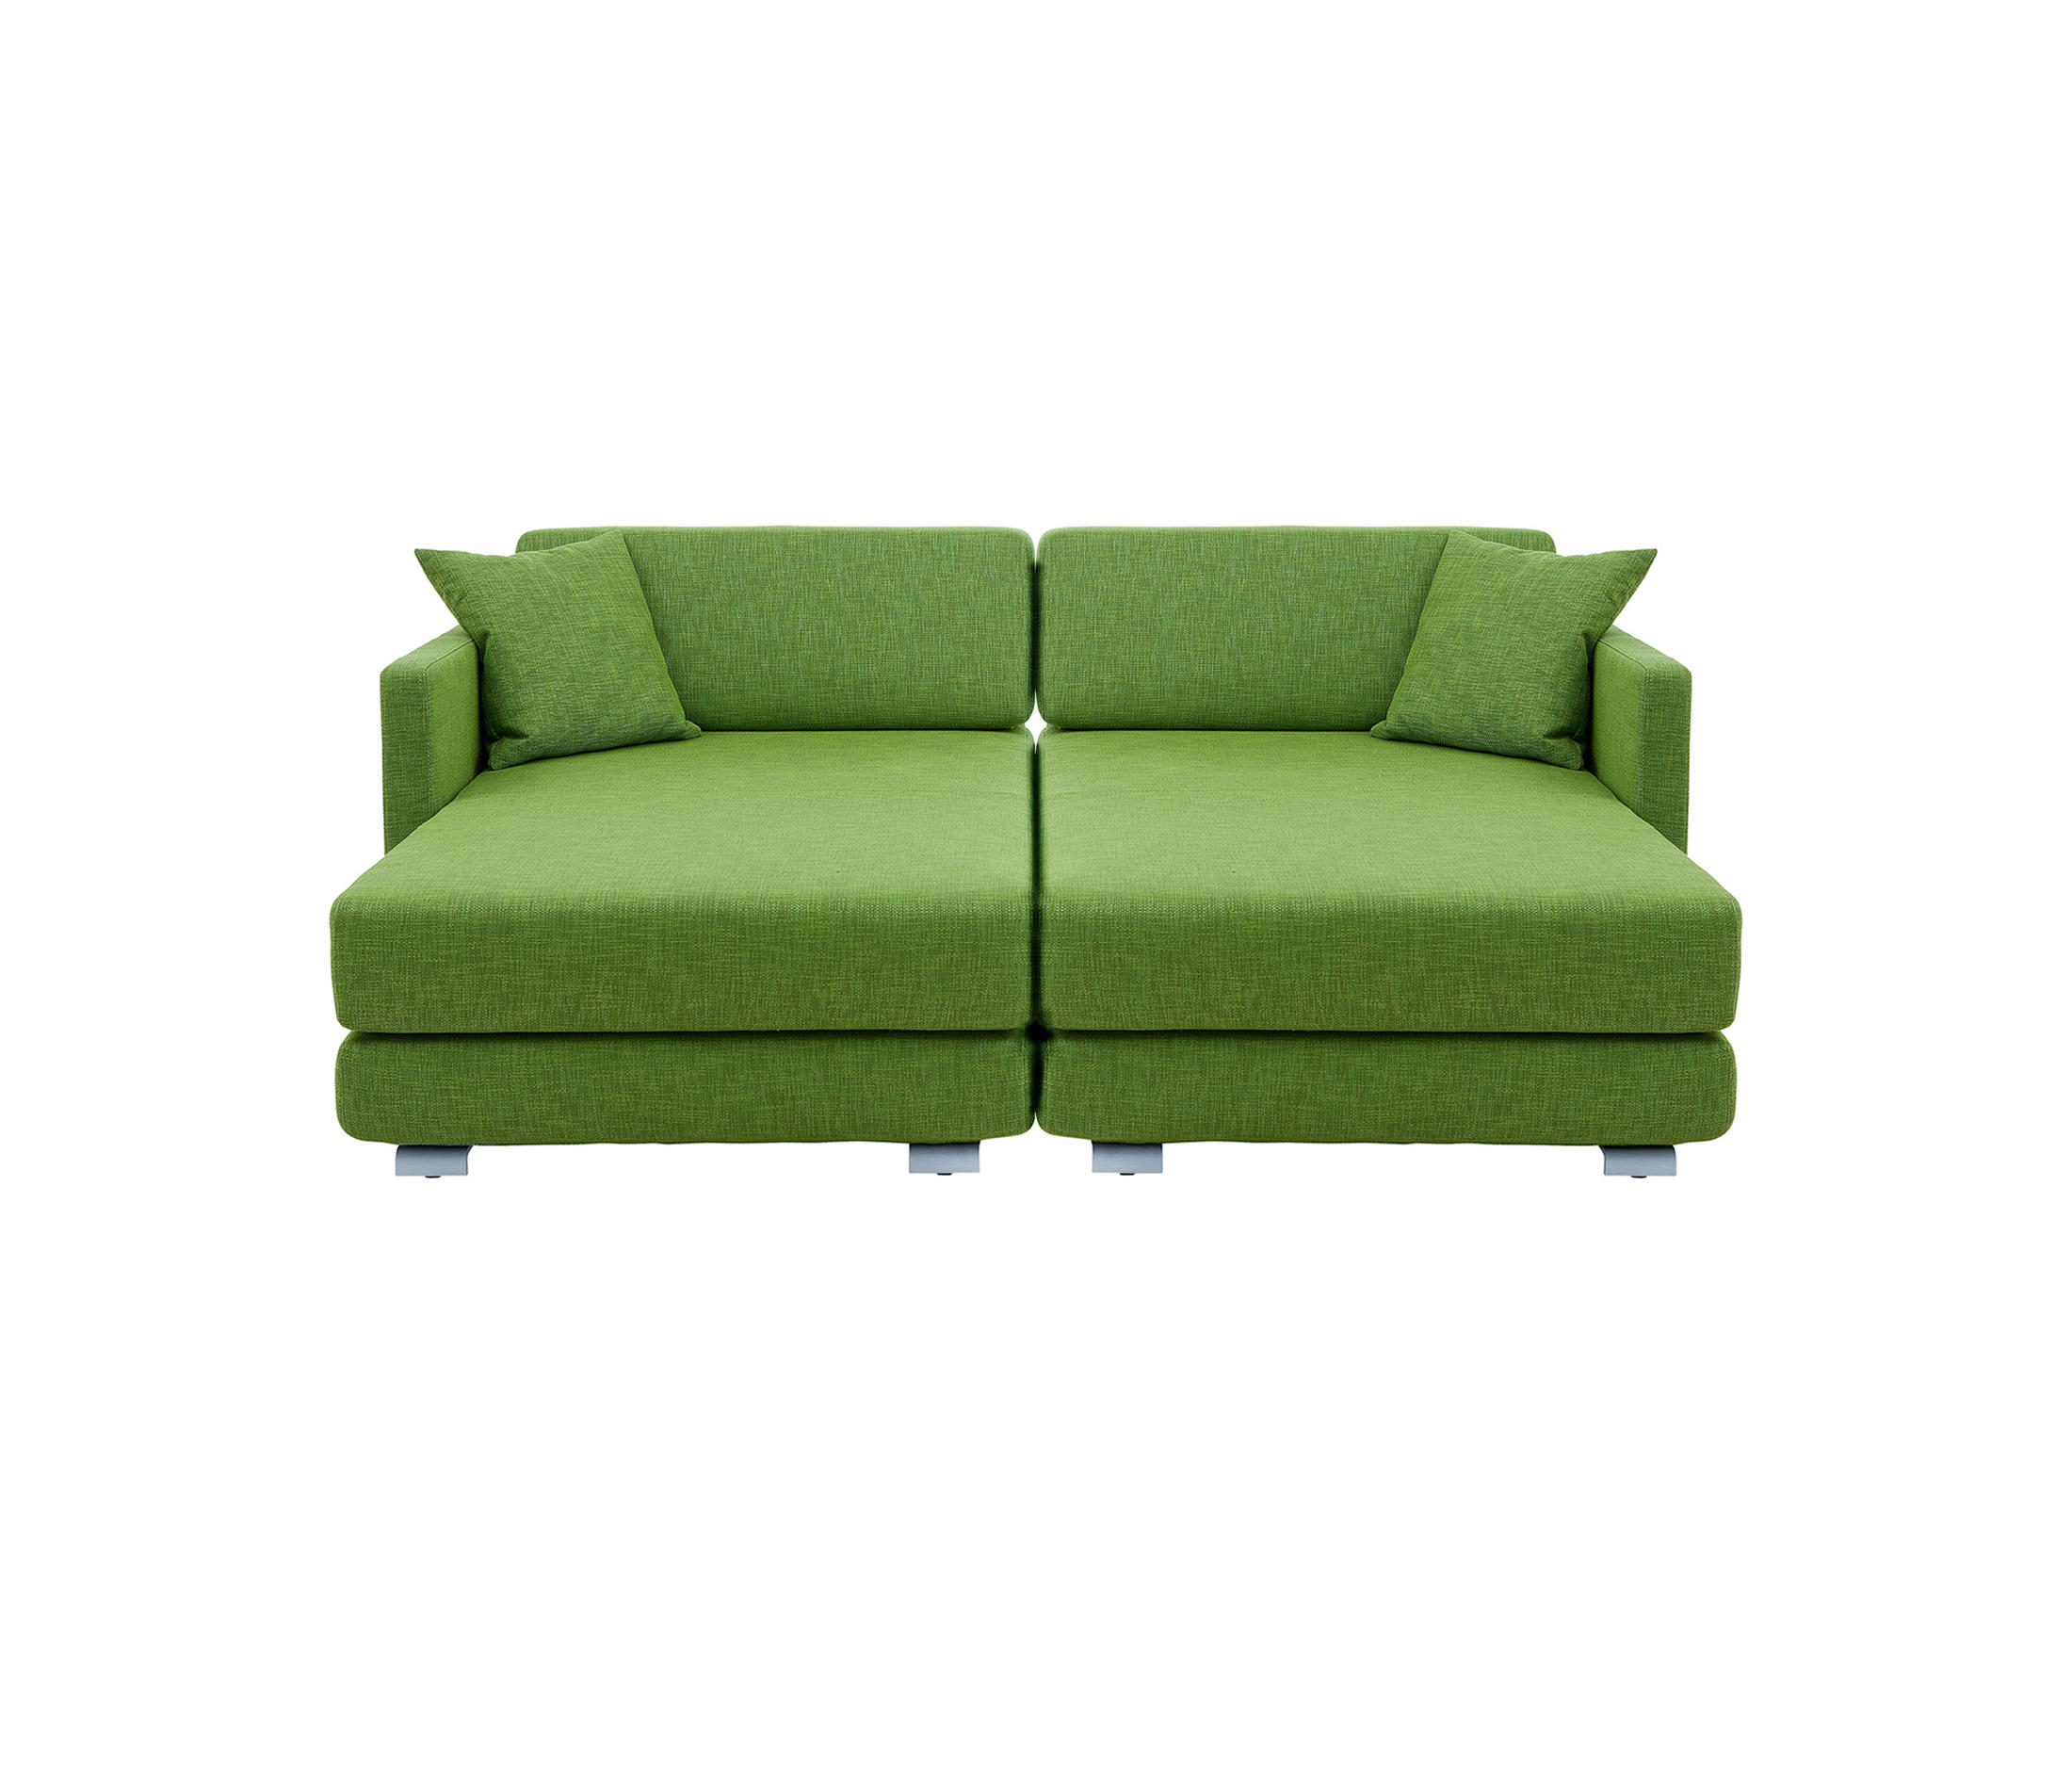 Lounge chaise long sofa beds from softline a s architonic for Chaise long sofa bed